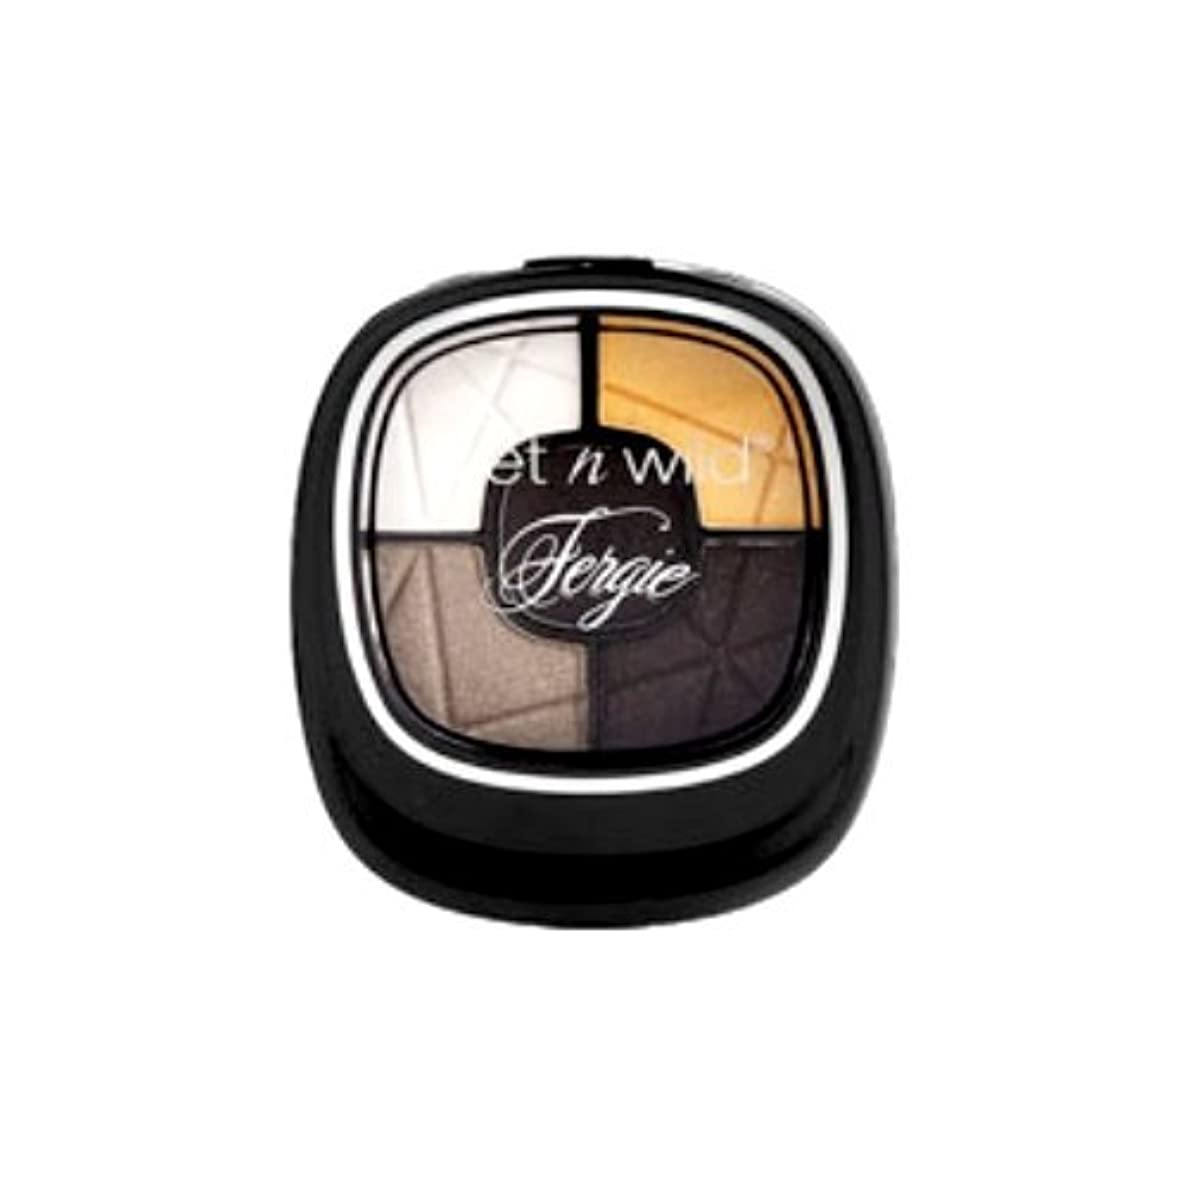 アルファベット順移行するマーカー(3 Pack) Wet N Wild FERGIE Photo Op Eyeshadow - Metropolitan Lights (並行輸入品)